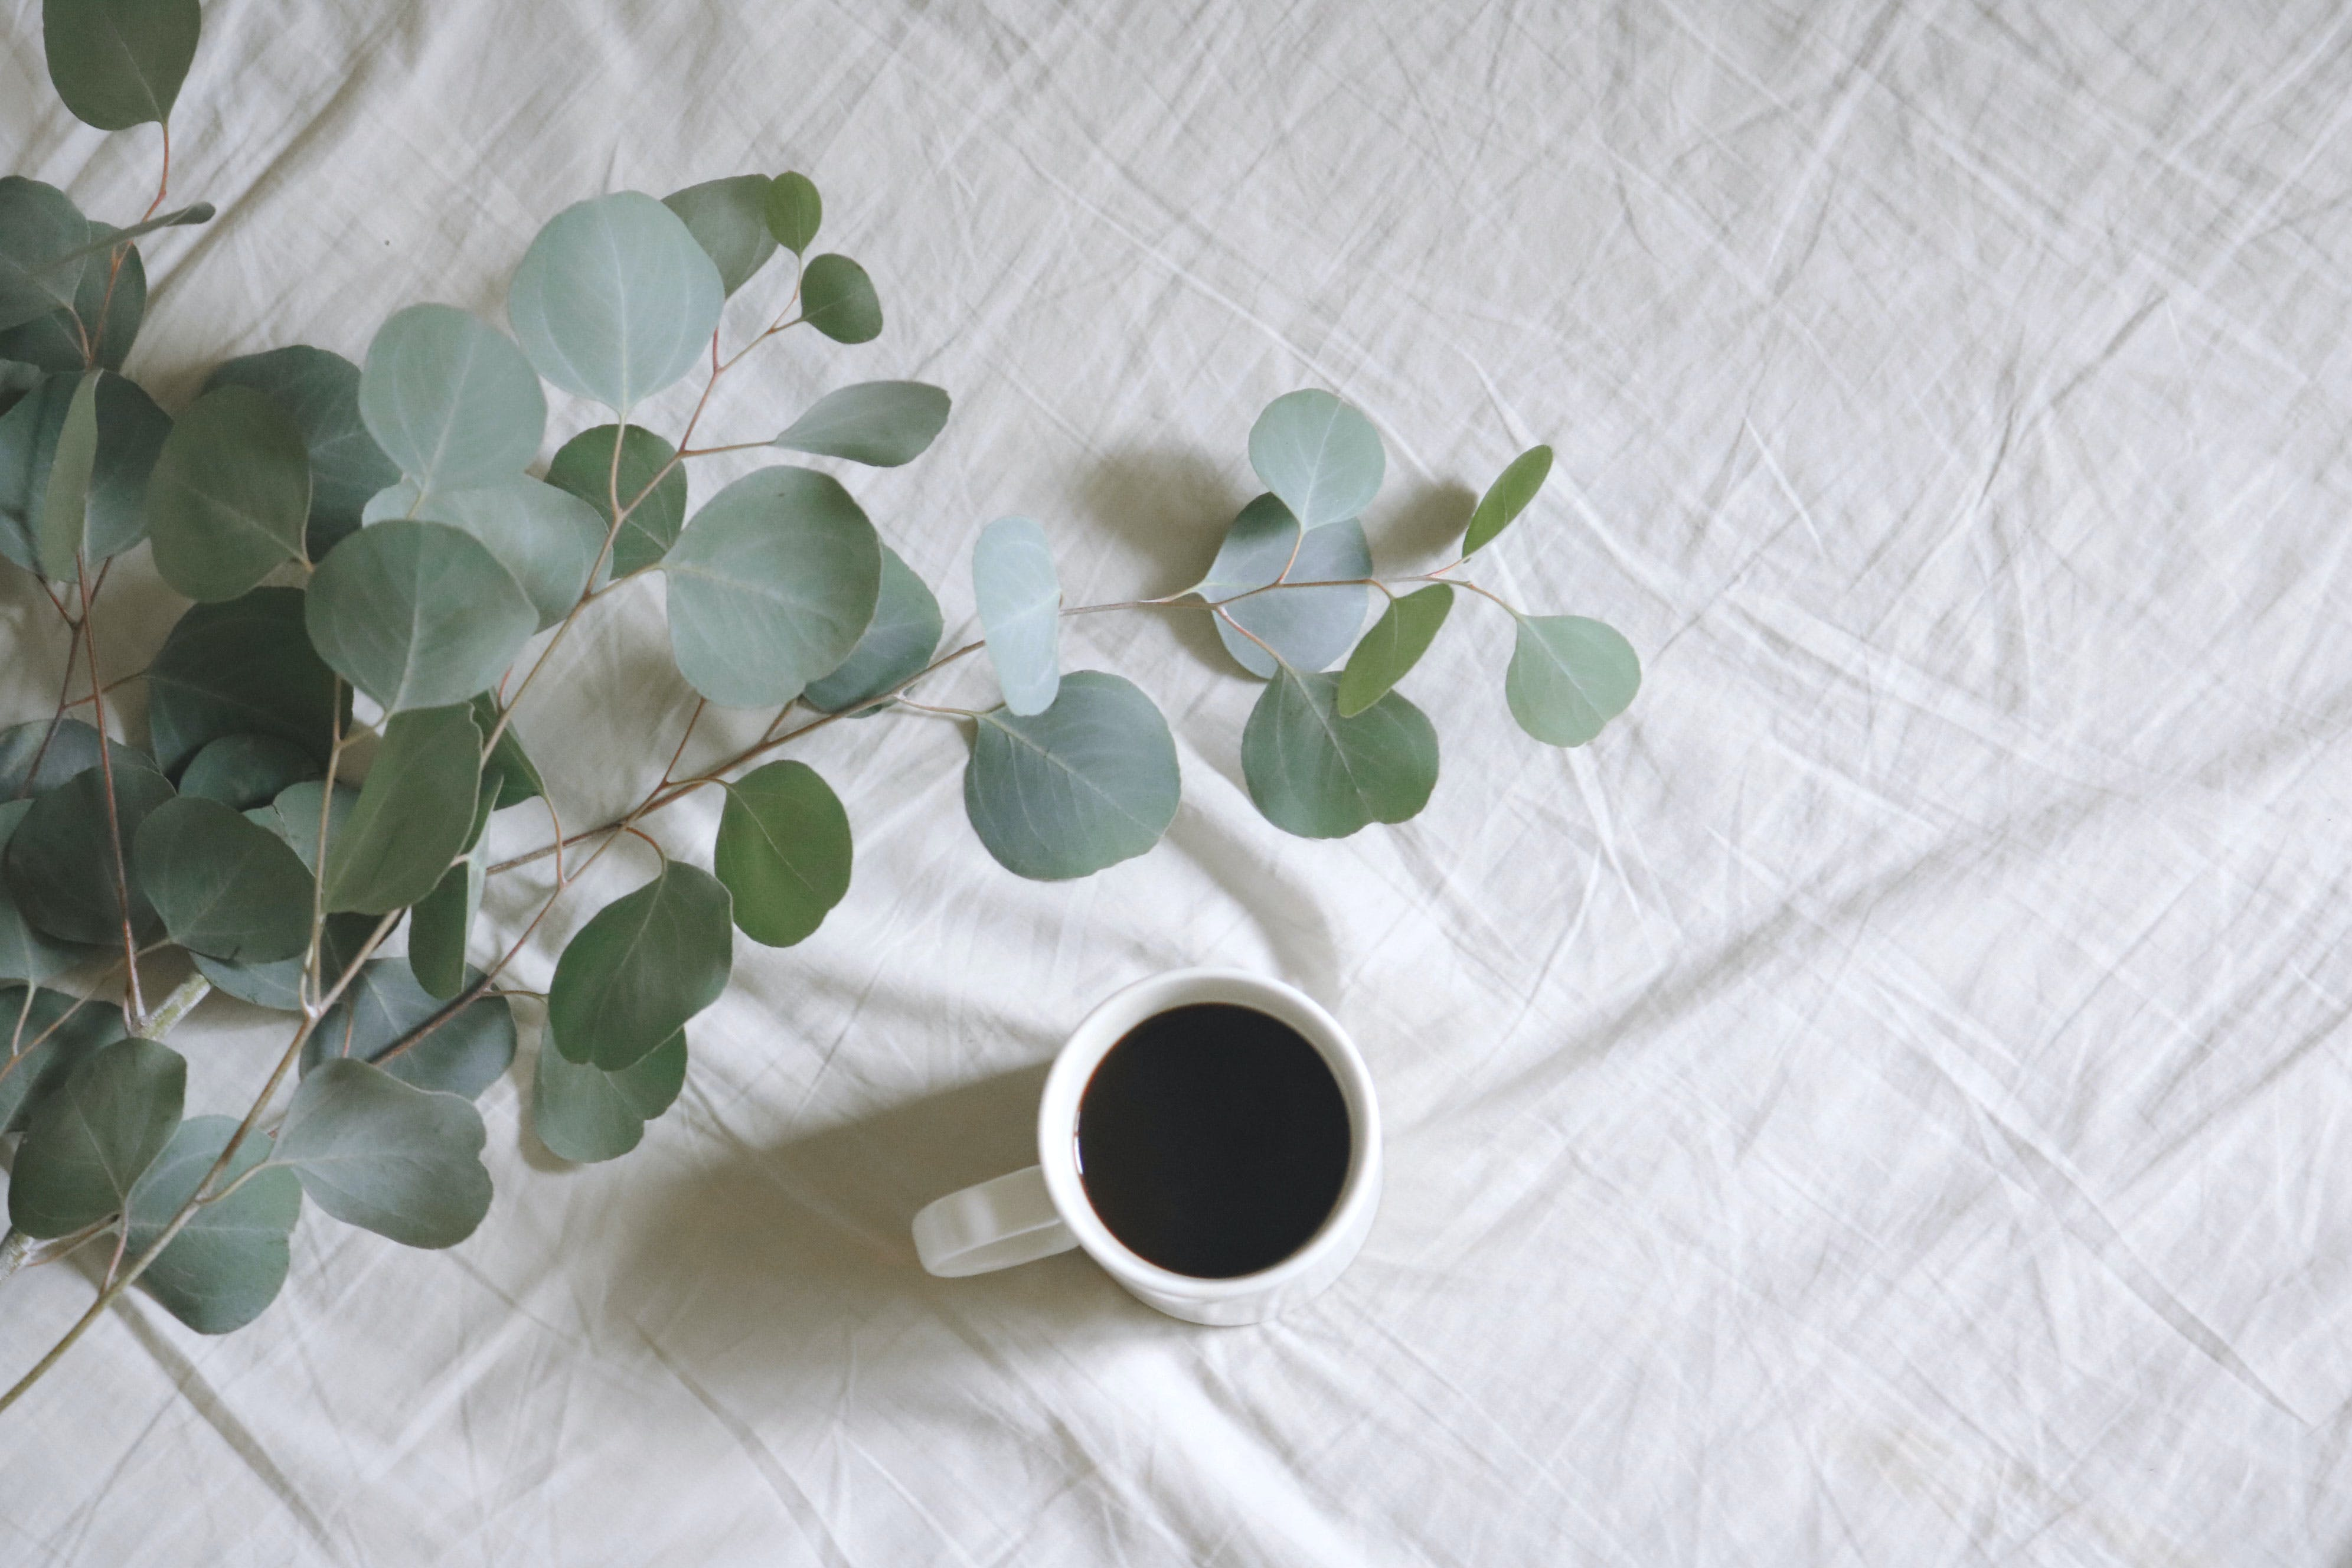 Flat Lay Photography of White Mug Beside Green Leafed Plants